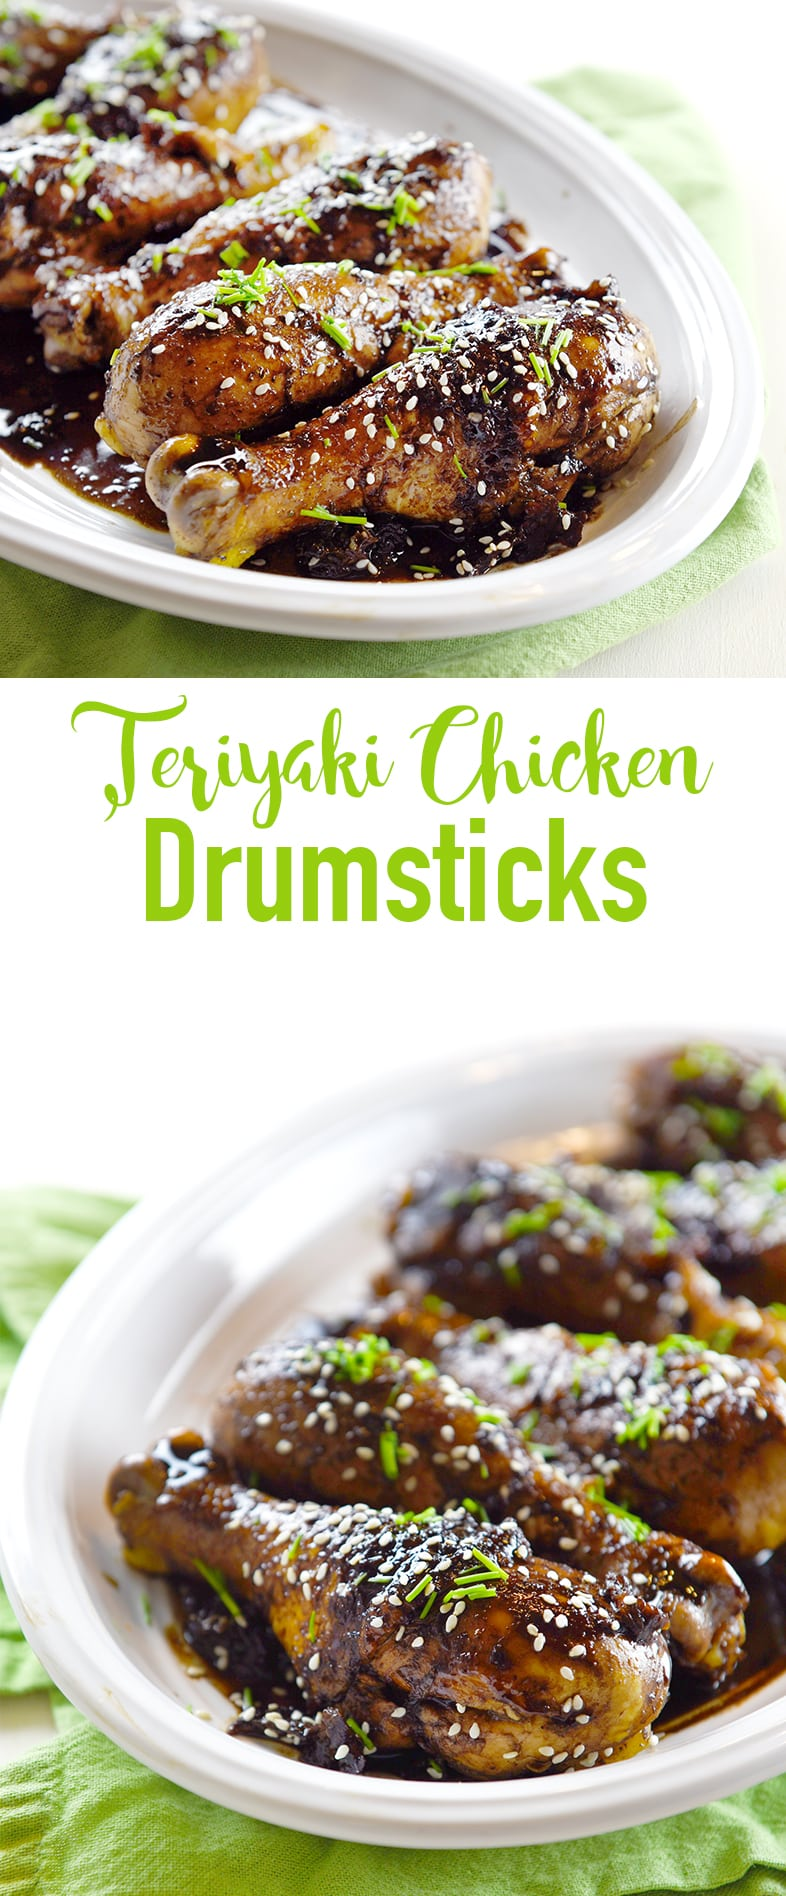 Teriyaki Chicken Drumsticks w low carb sauce! So good and perfect for game day or a weeknight dinner idea